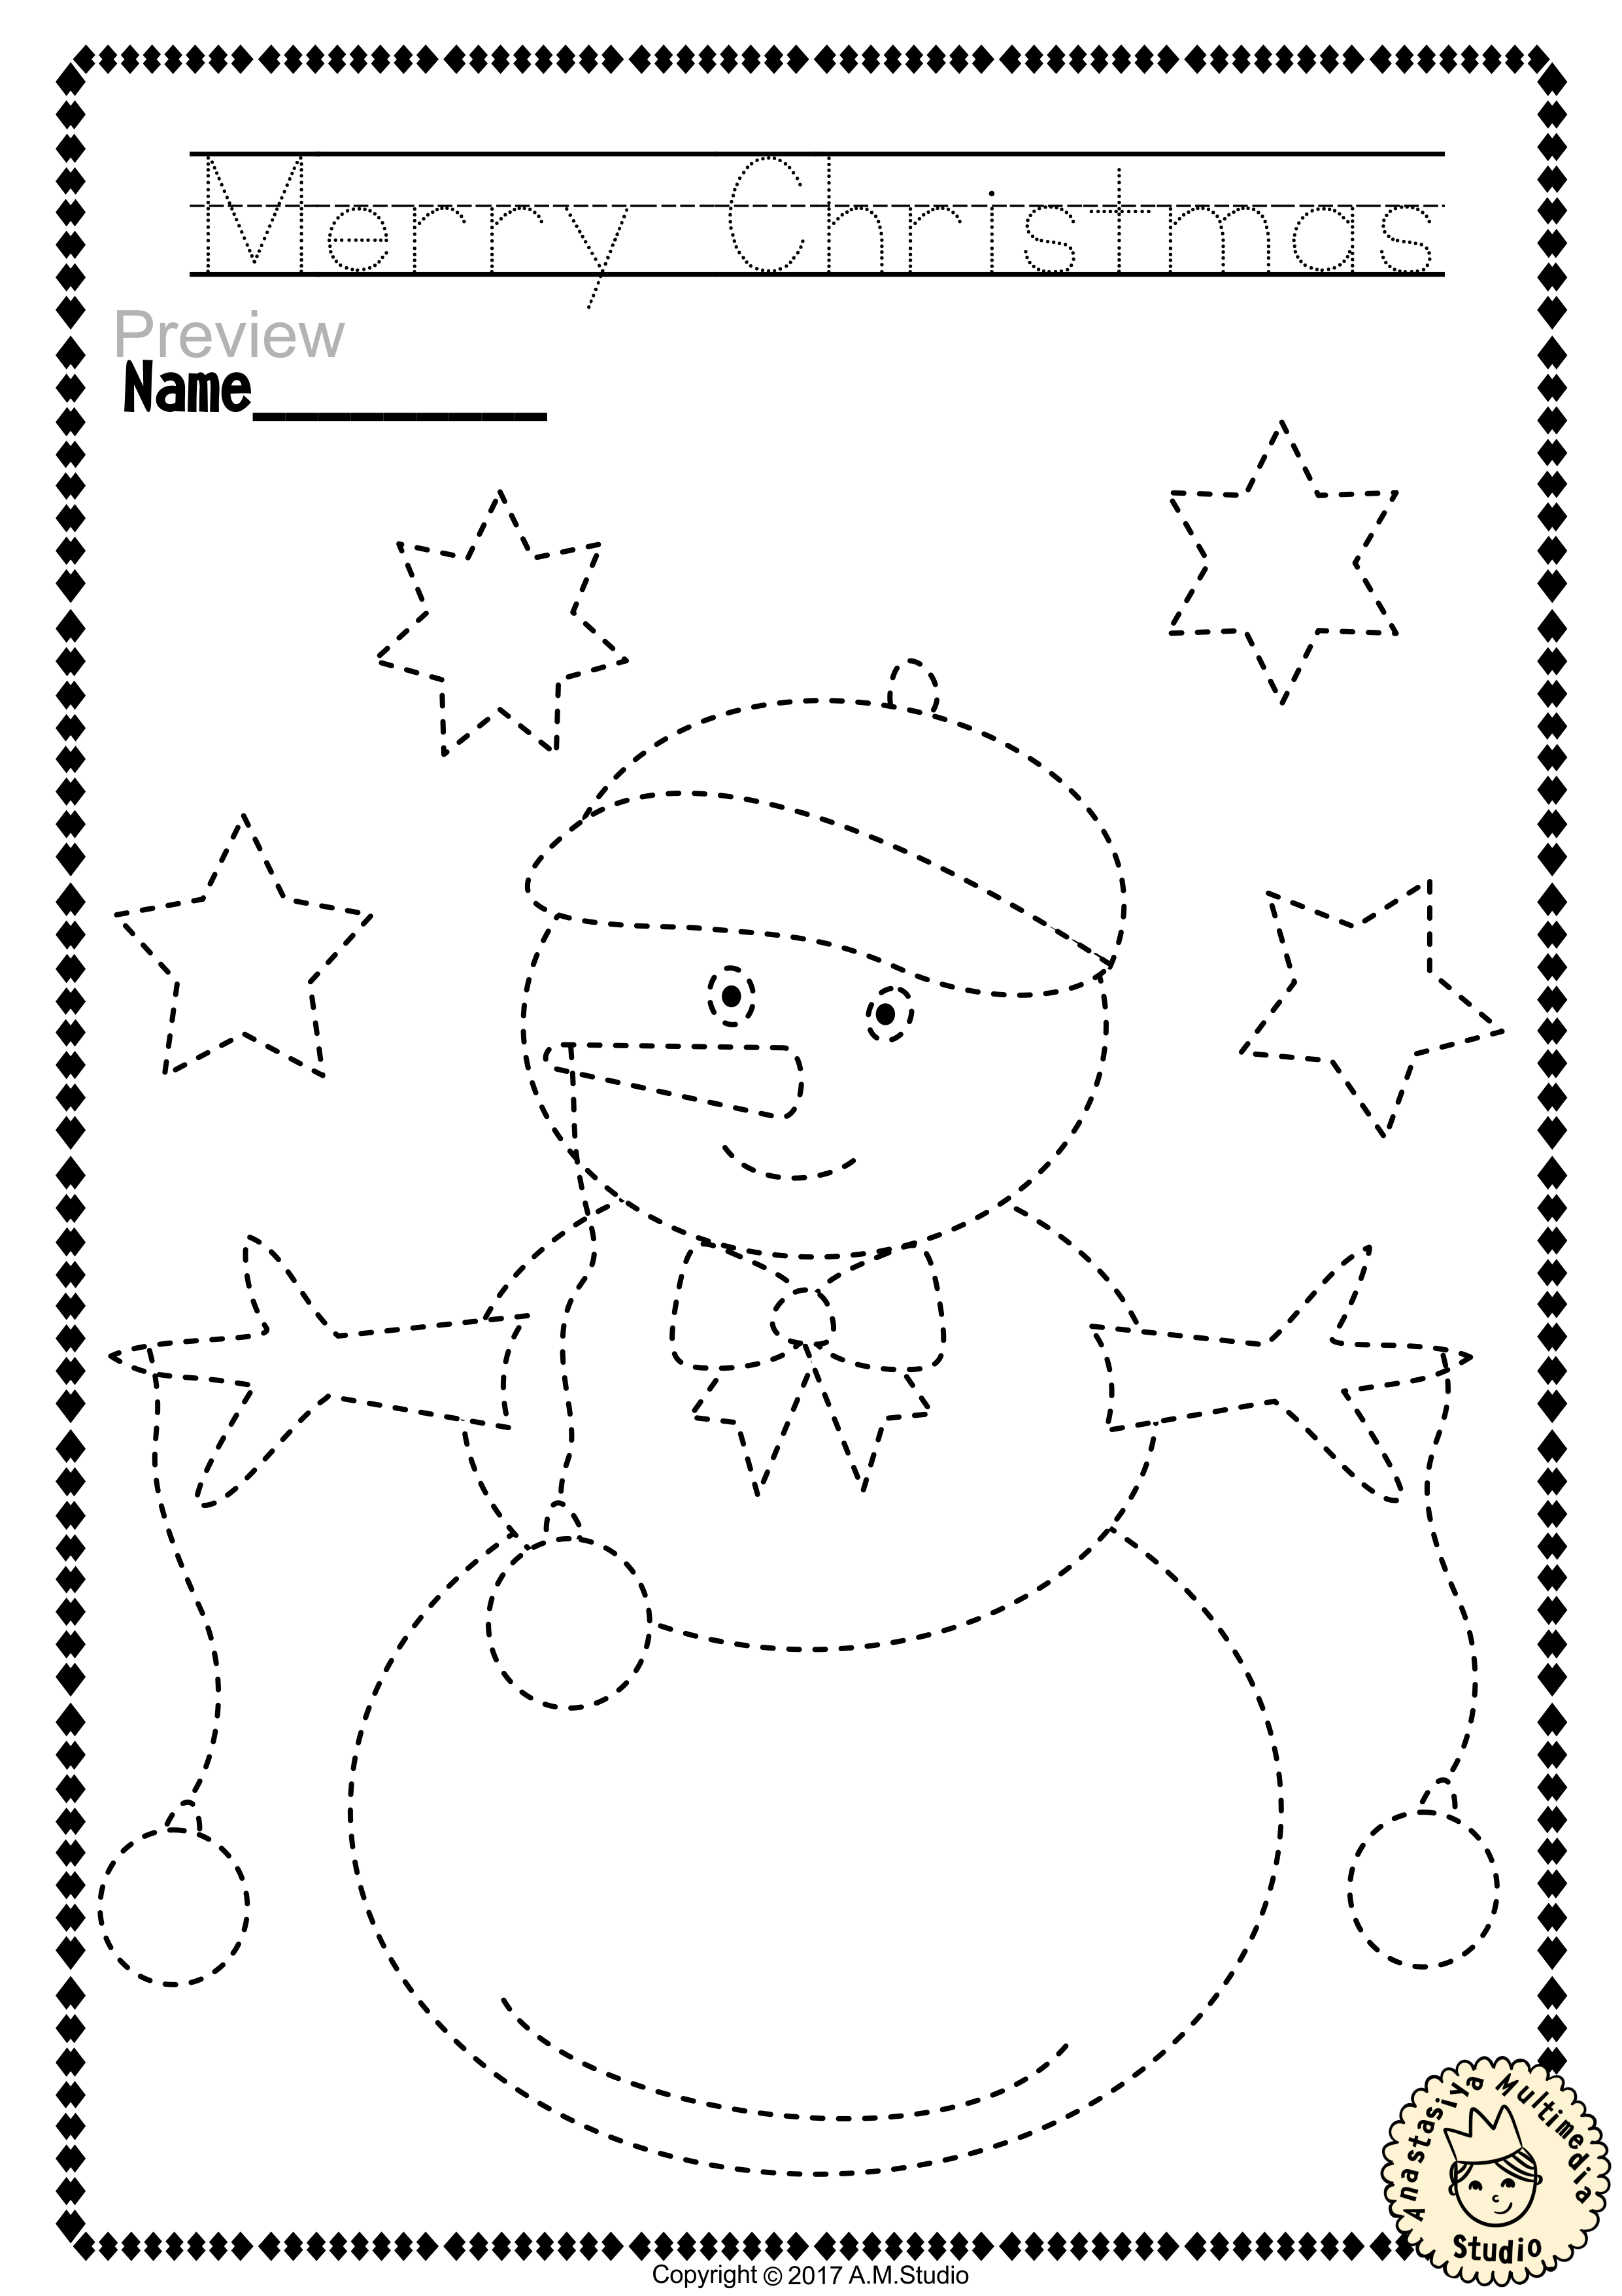 Worksheets Fine Motor Skills Worksheets christmas trace and color pages fine motor skills pre writing writing